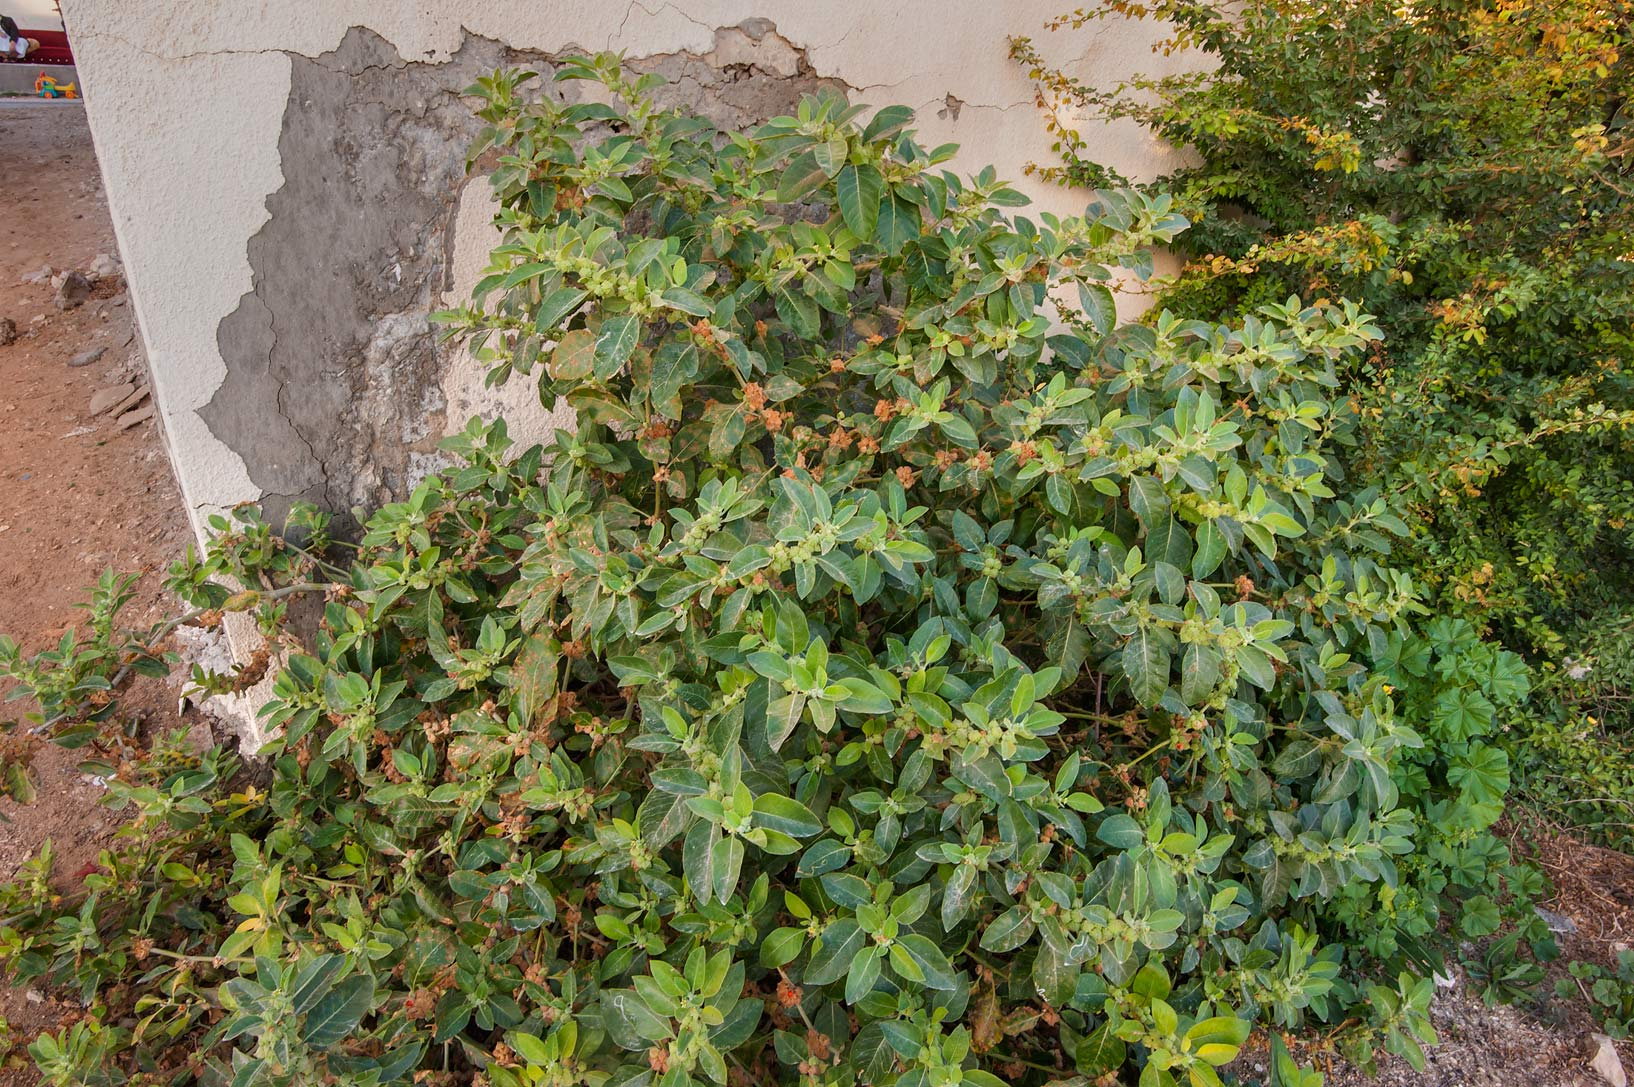 Large bush of Ashwagandha plant (Withania...St. in Al Lejbailat area. Doha, Qatar